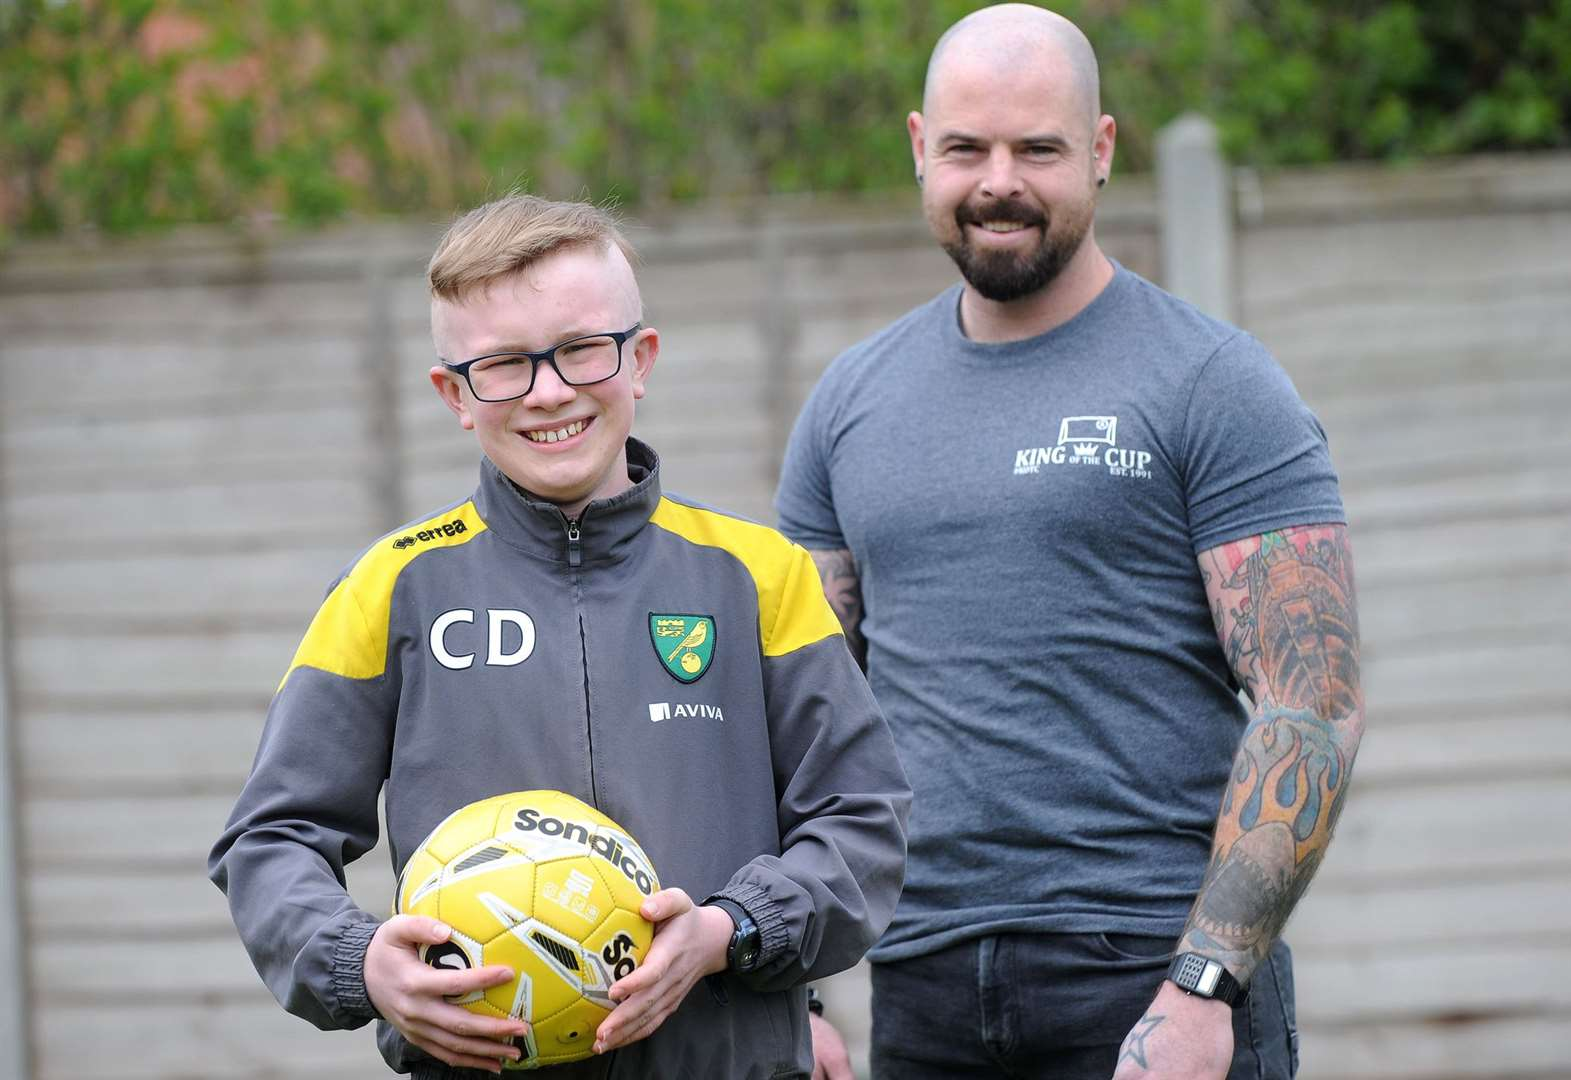 Mum humbled by event's support for sick Callum